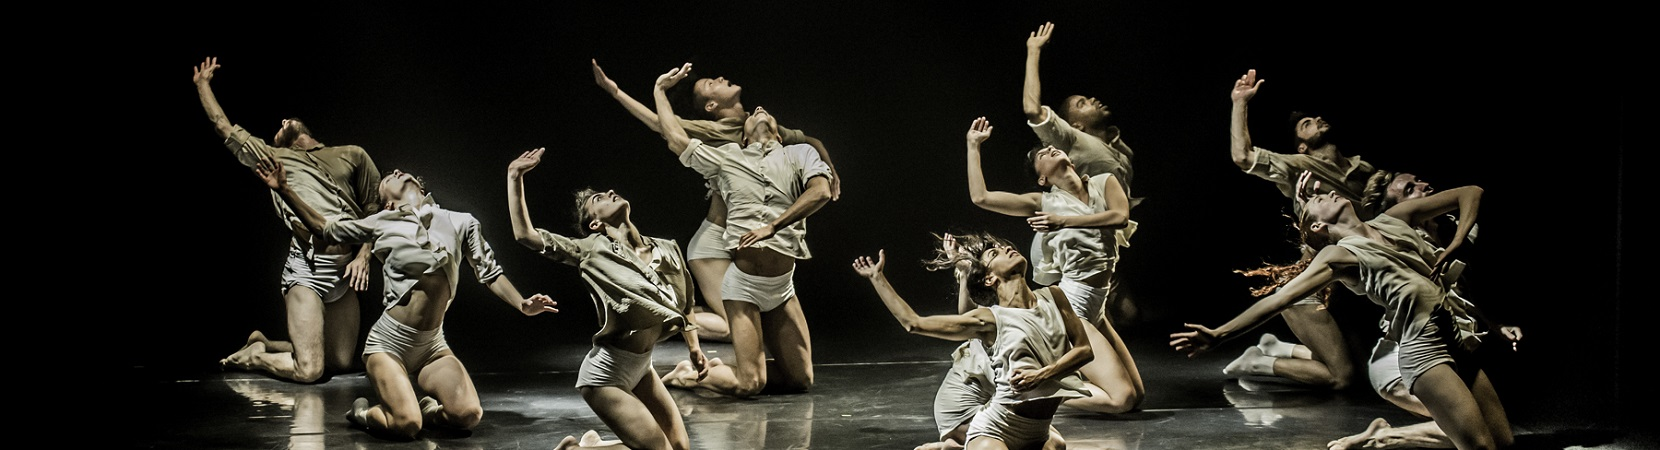 Horses-in-the-Sky-by-Rami-Beer-Kibbutz-Contemporray-Dance-Company-The-Best-Dance-Company-Homepage-Slider-001-1